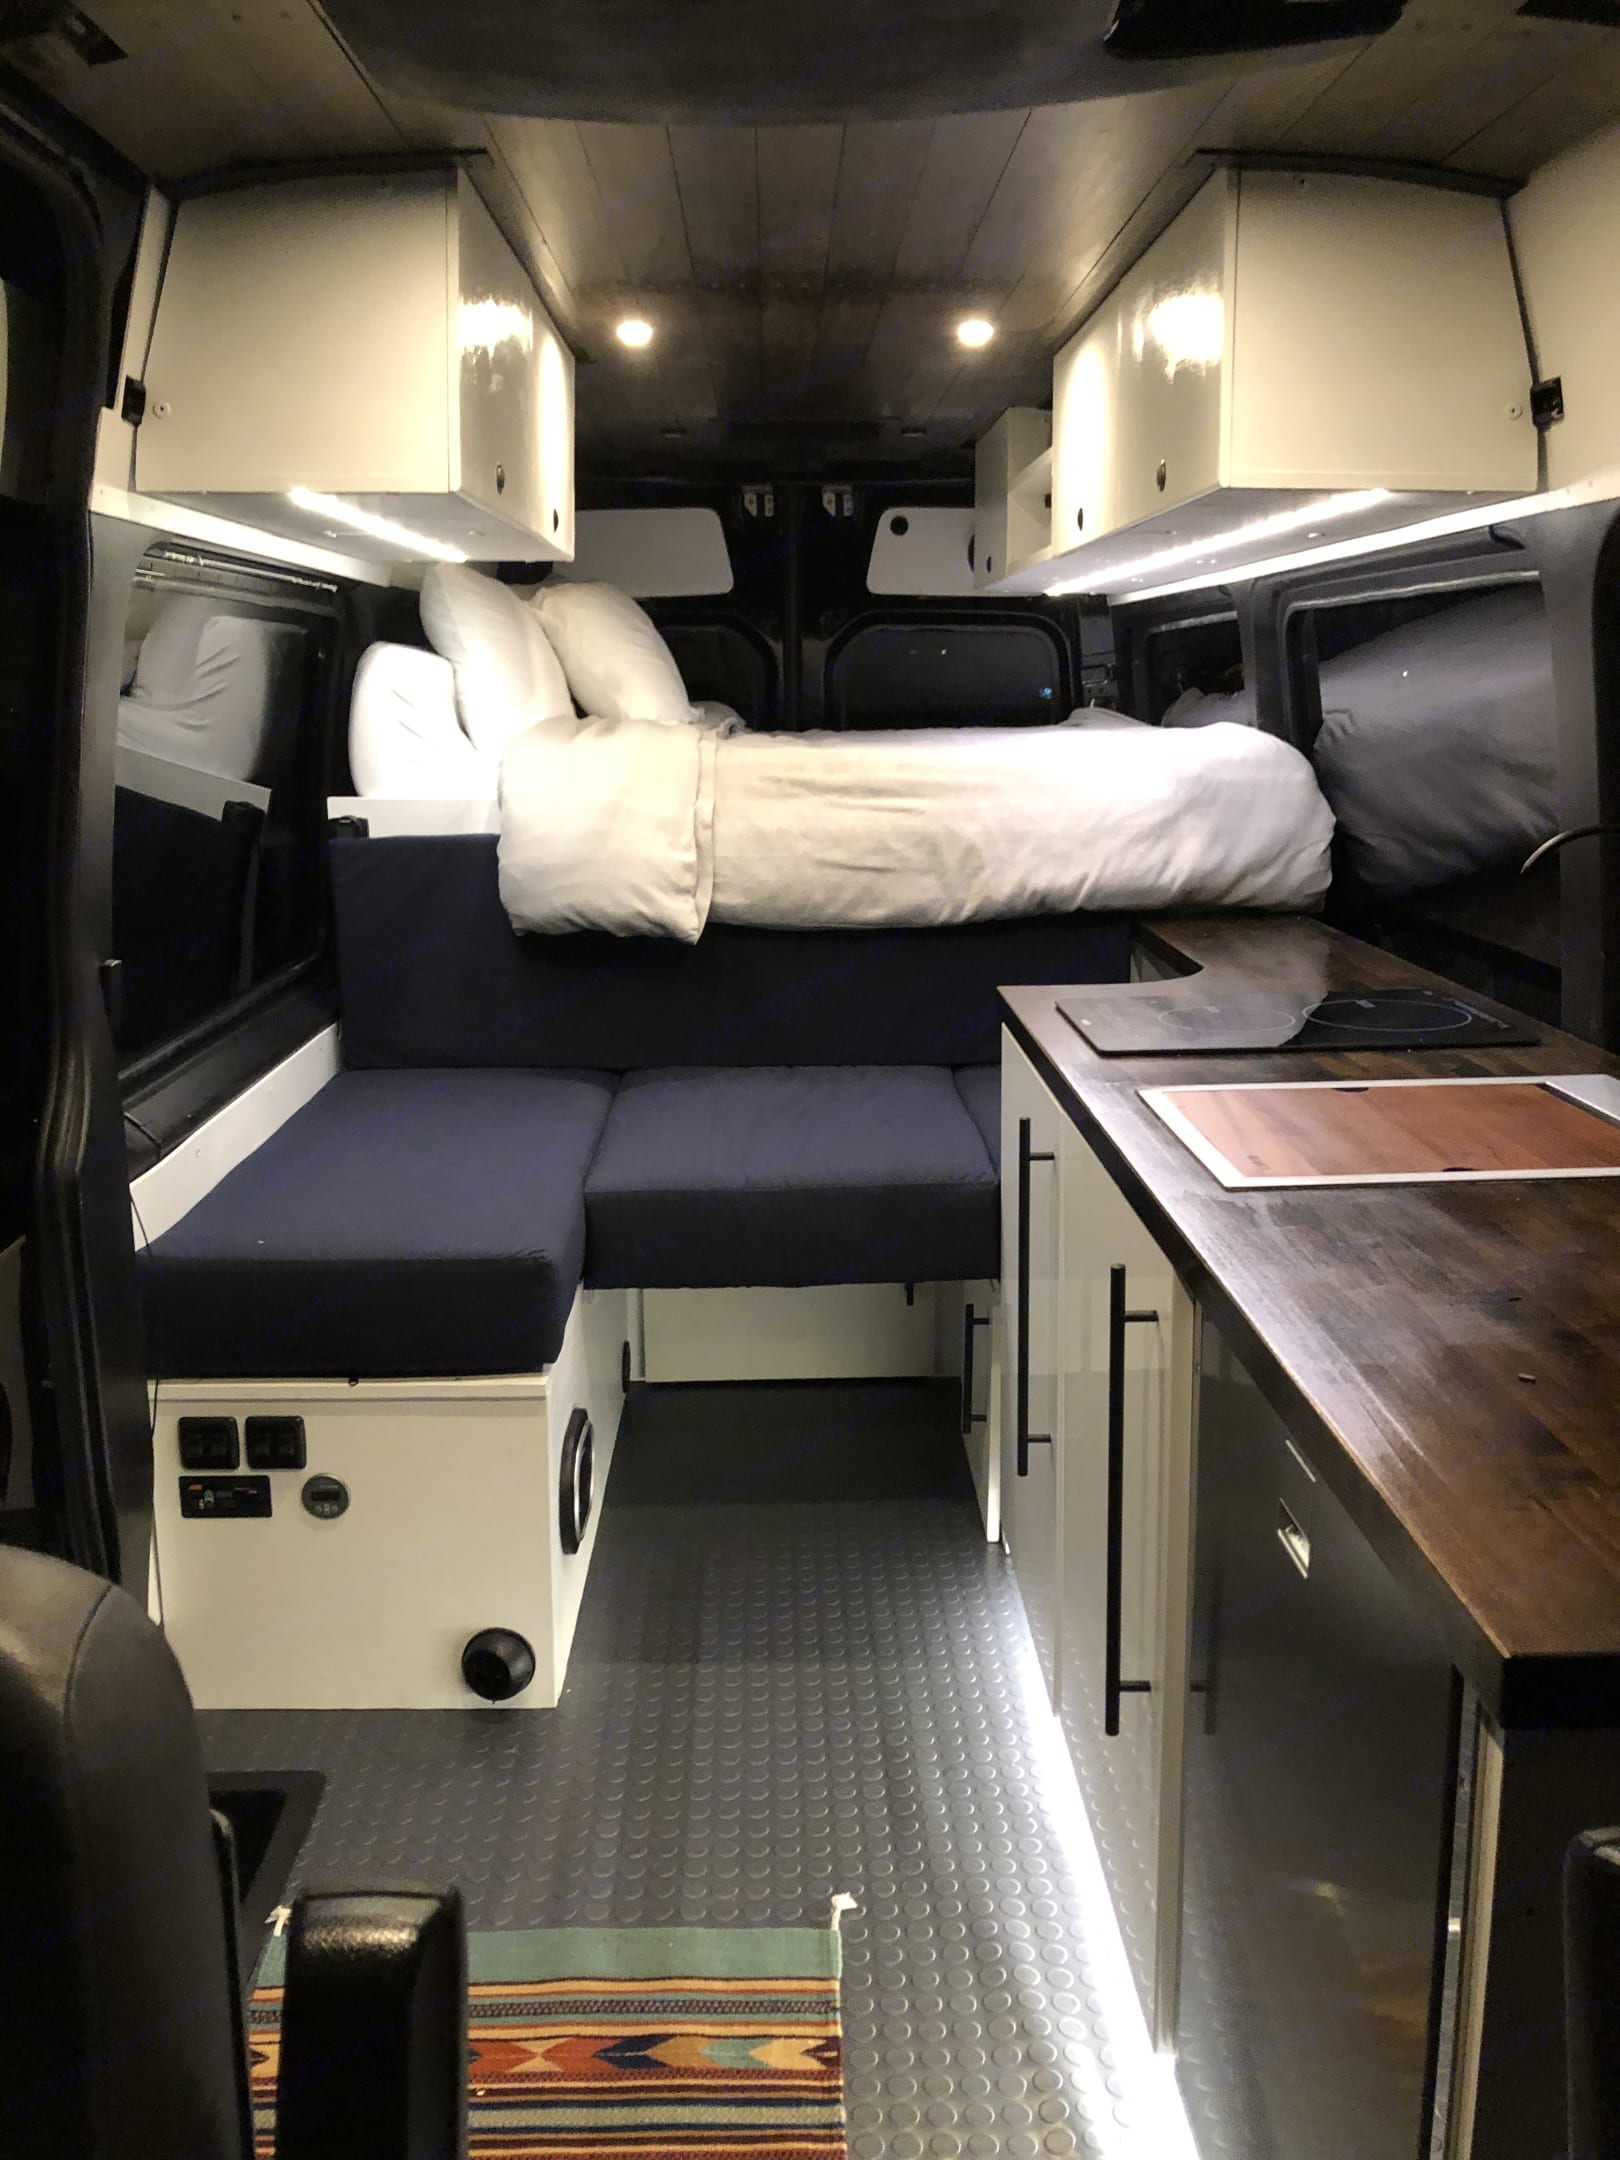 Lots of Counter Space!!! 2 Burner Electric Induction Cook Top and Rvati Stainless Steel Sink with Cutting Board.. Mercedes-Benz Sprinter 2012